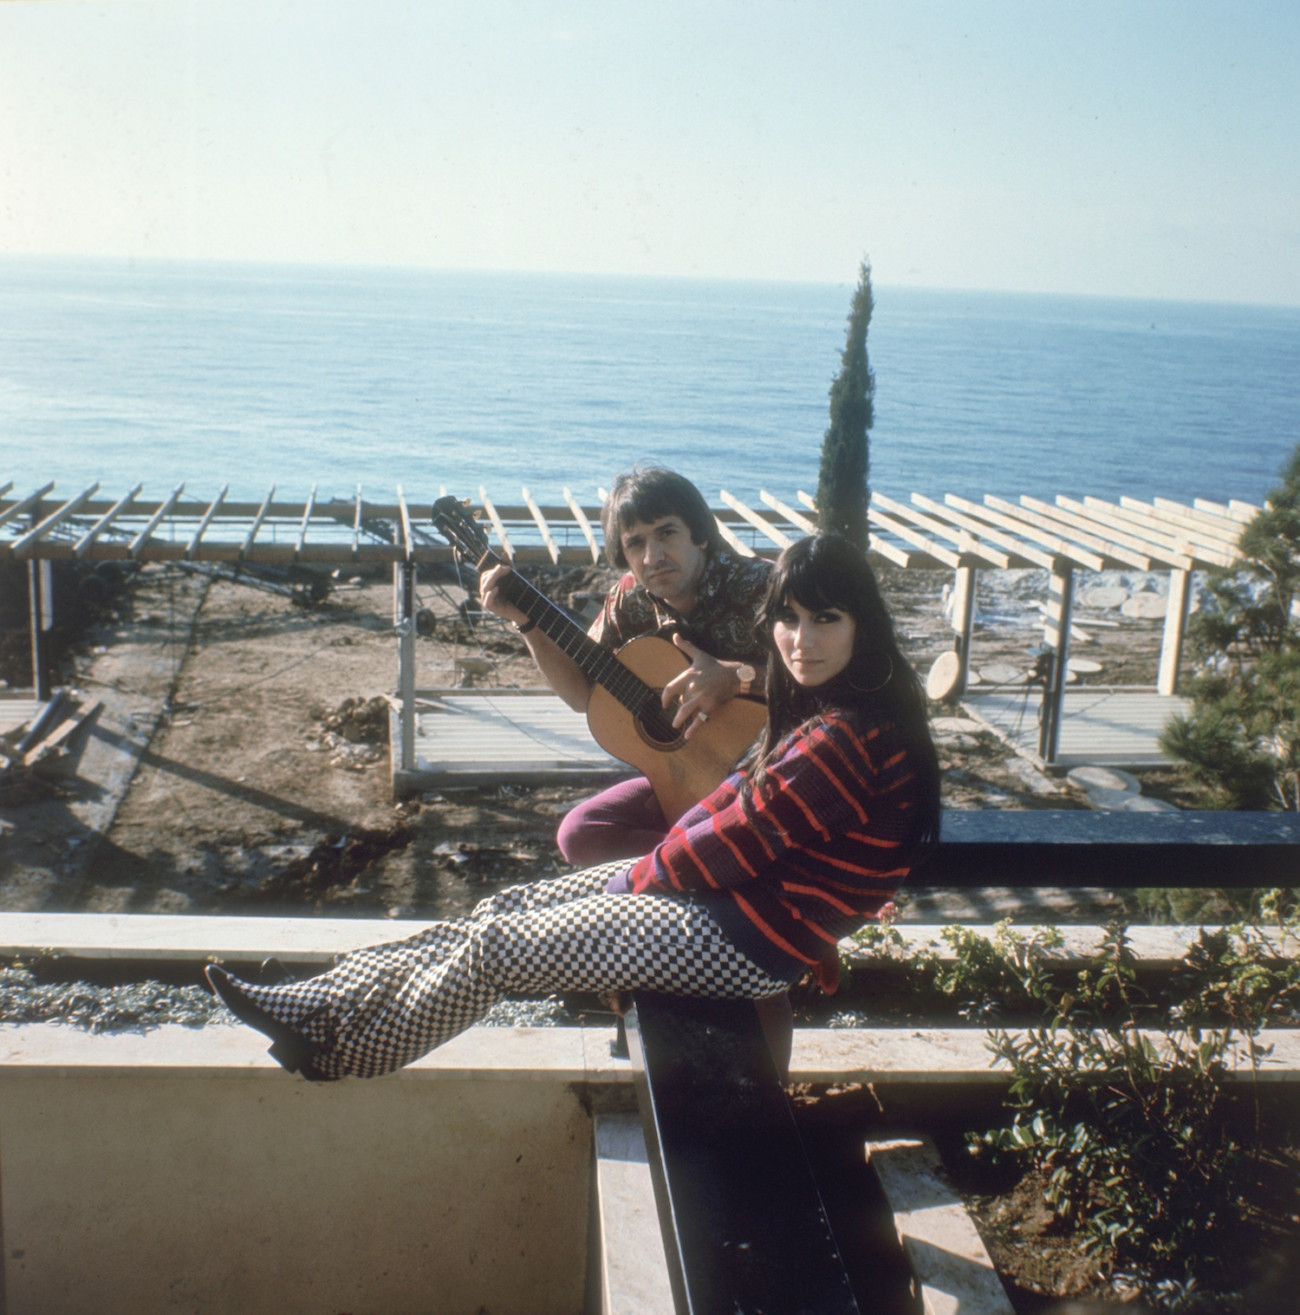 Salvatore Bono (1935 - 1998) and Cherilyn Sarkasian LaPier, better known as the husband and wife duo, Sonny and Cher, at their home in California, circa 1966. (Photo by Keystone/Hulton Archive/Getty Images)